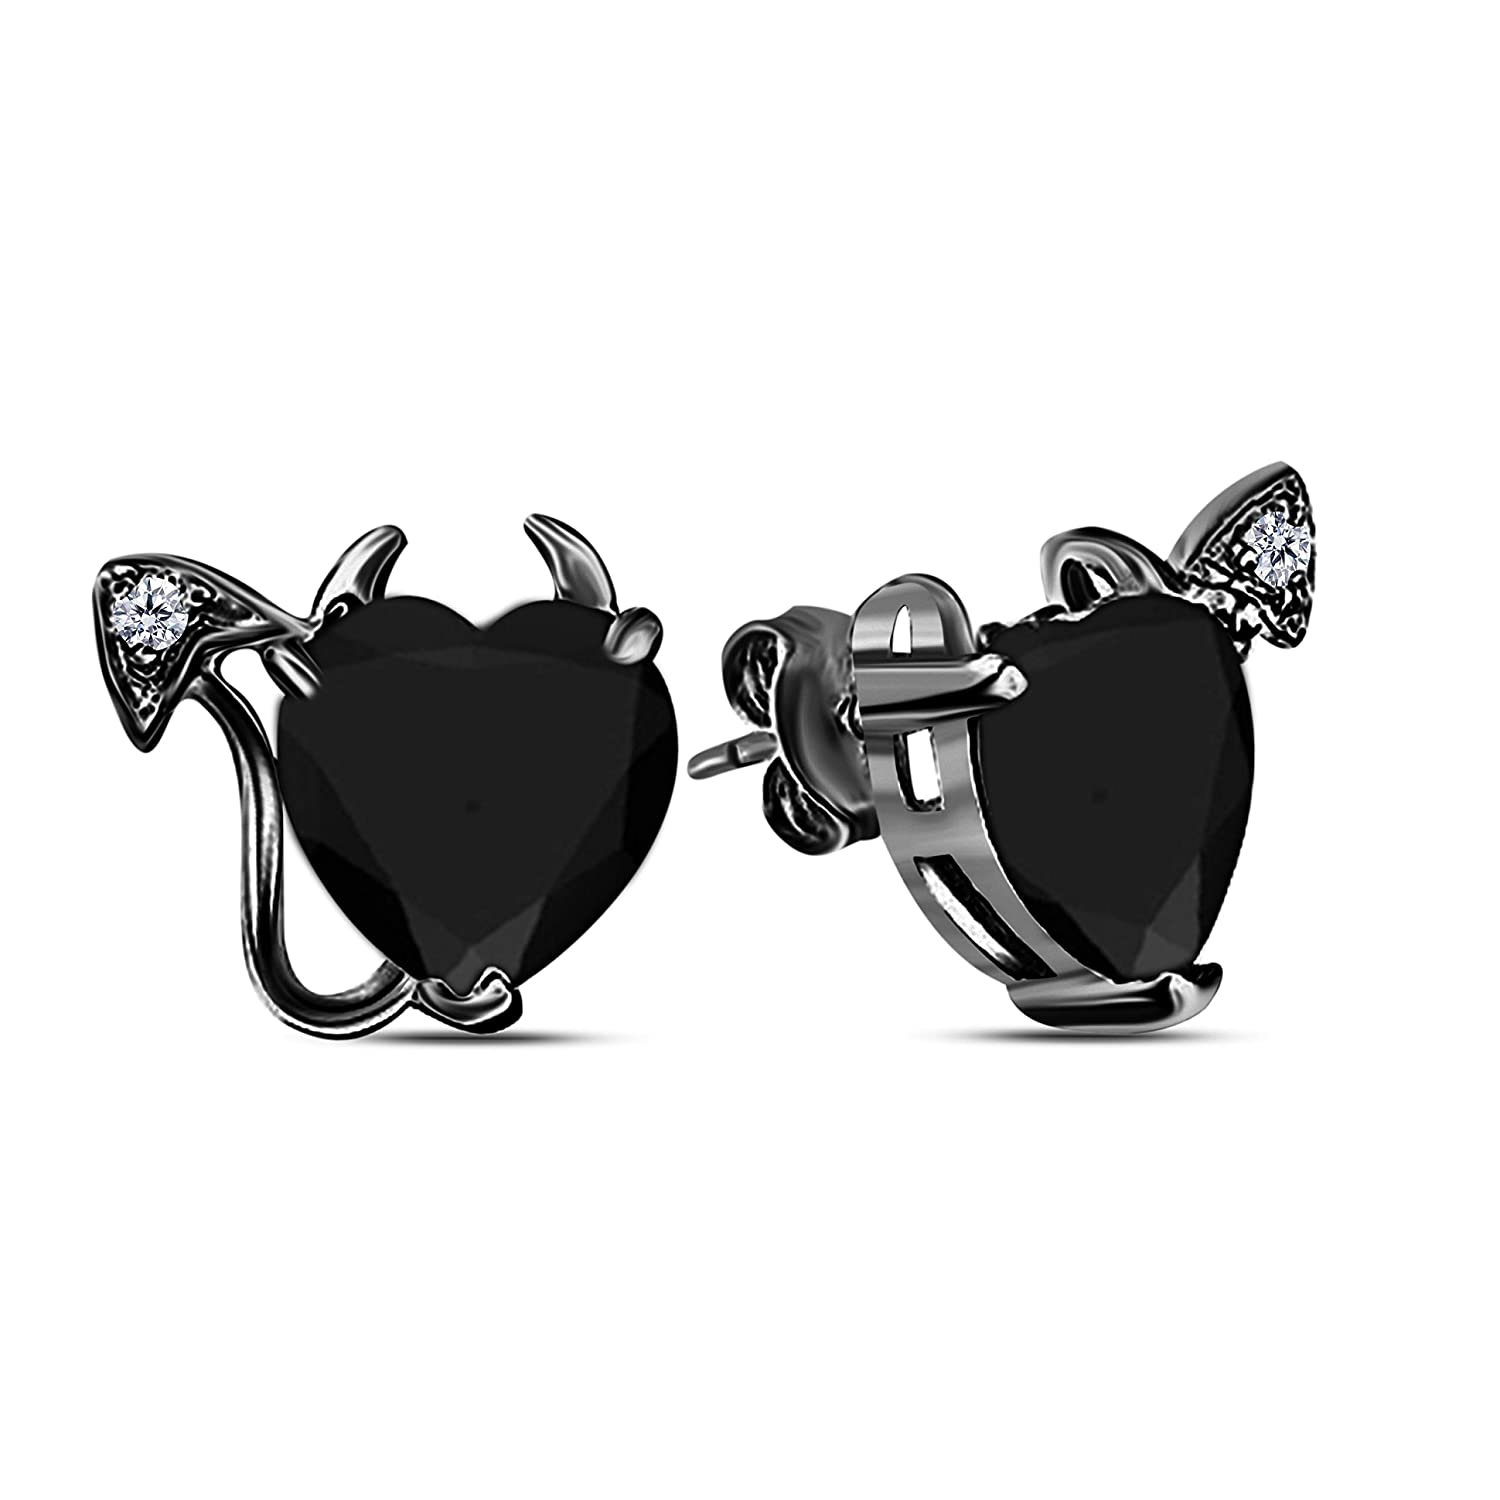 Gothic Vampire Bat .925 Sterling Silver 14k Black Gold Plated Black CZ Diamond Pendant Necklace /& Earrings Fashion Jewelry Set for Women Best Gift for Wife Girlfriend